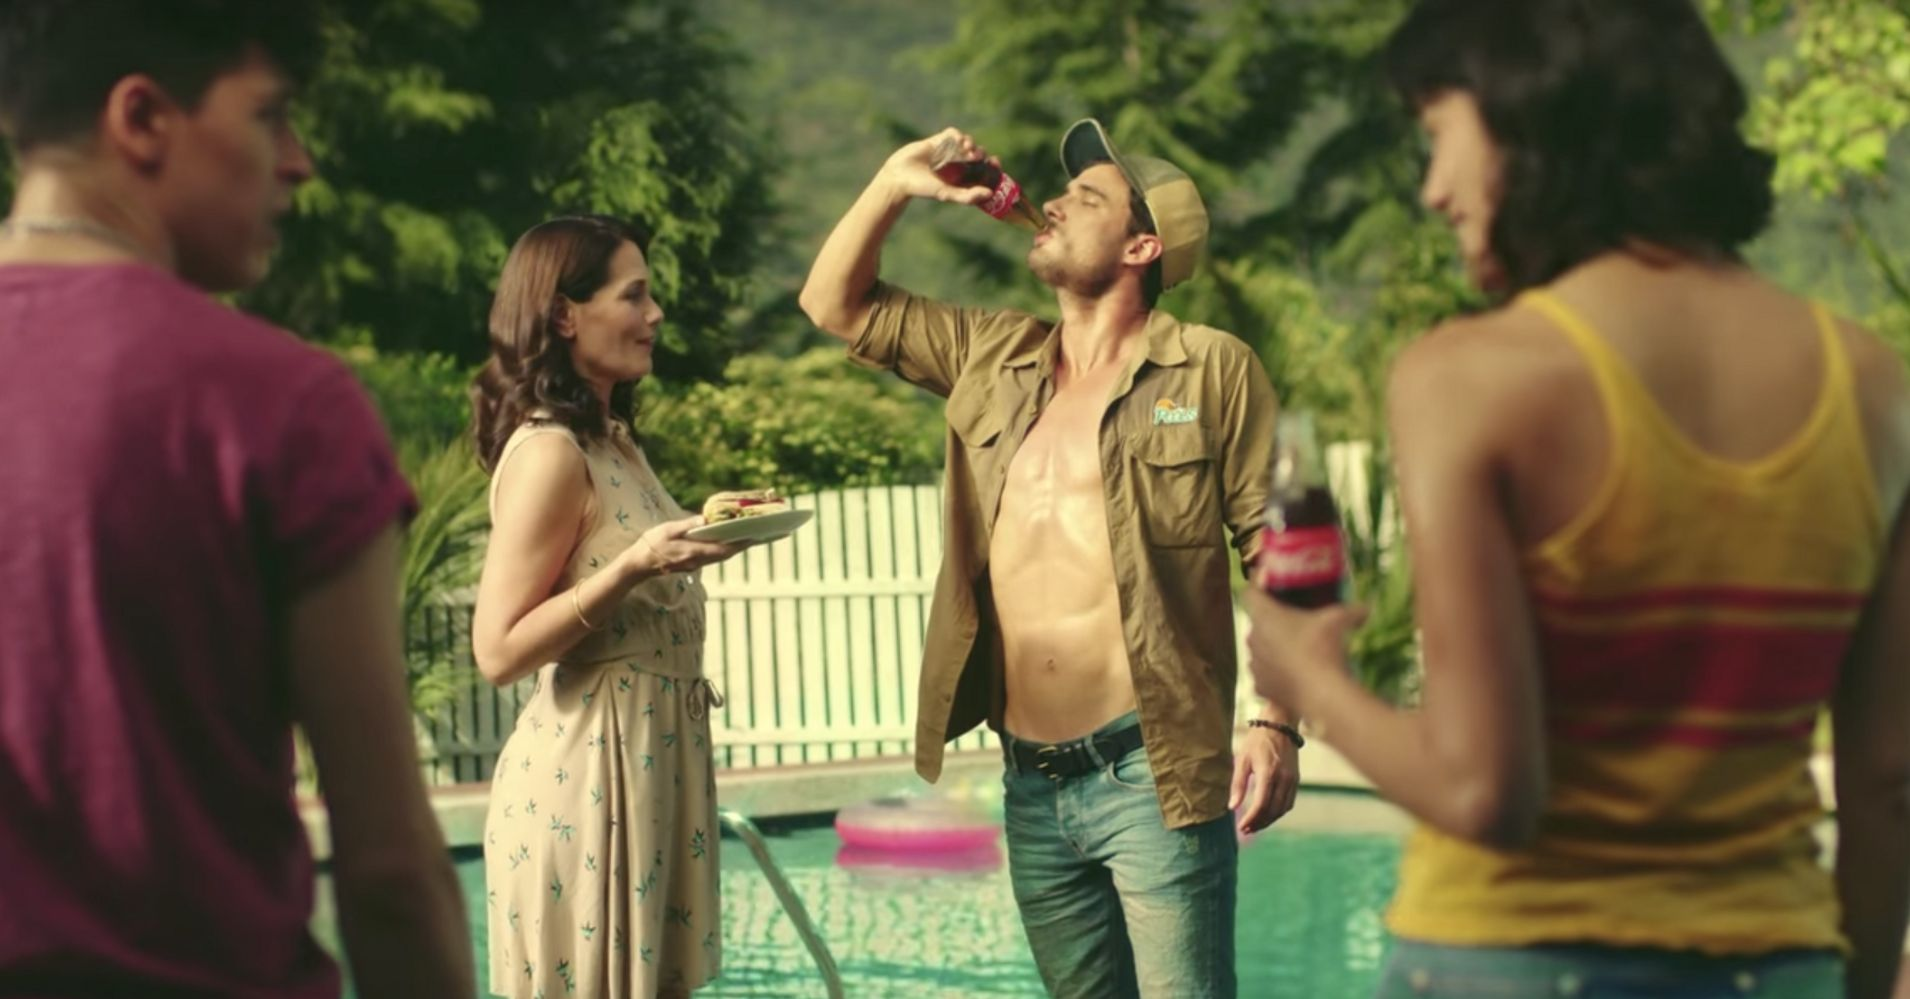 Coke's Sexy New Ad Shows Brother And Sister Competing For The Pool Boy | HuffPost